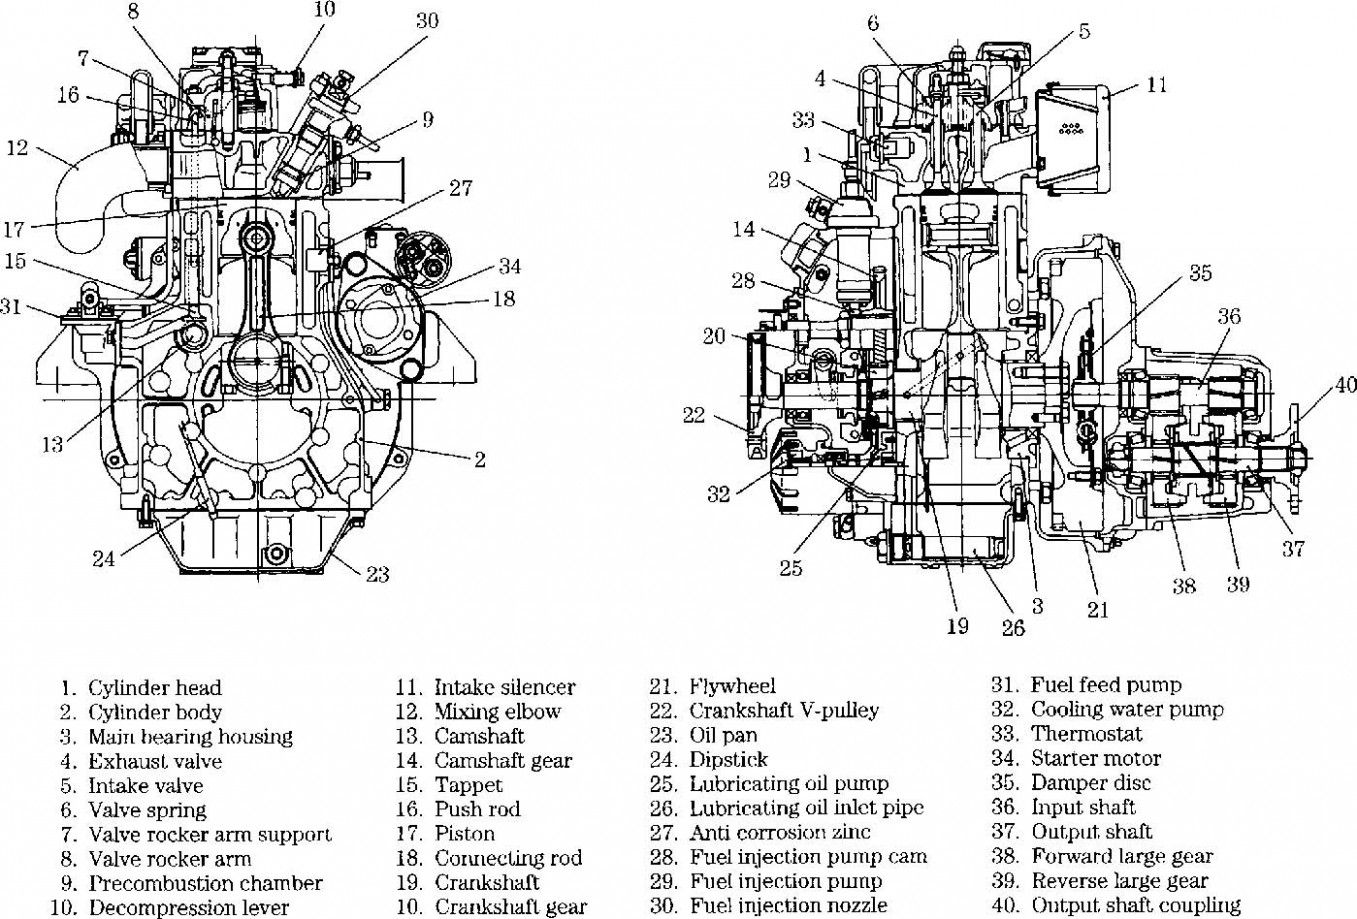 Internal Combustion Engine Block Diagram di 2020